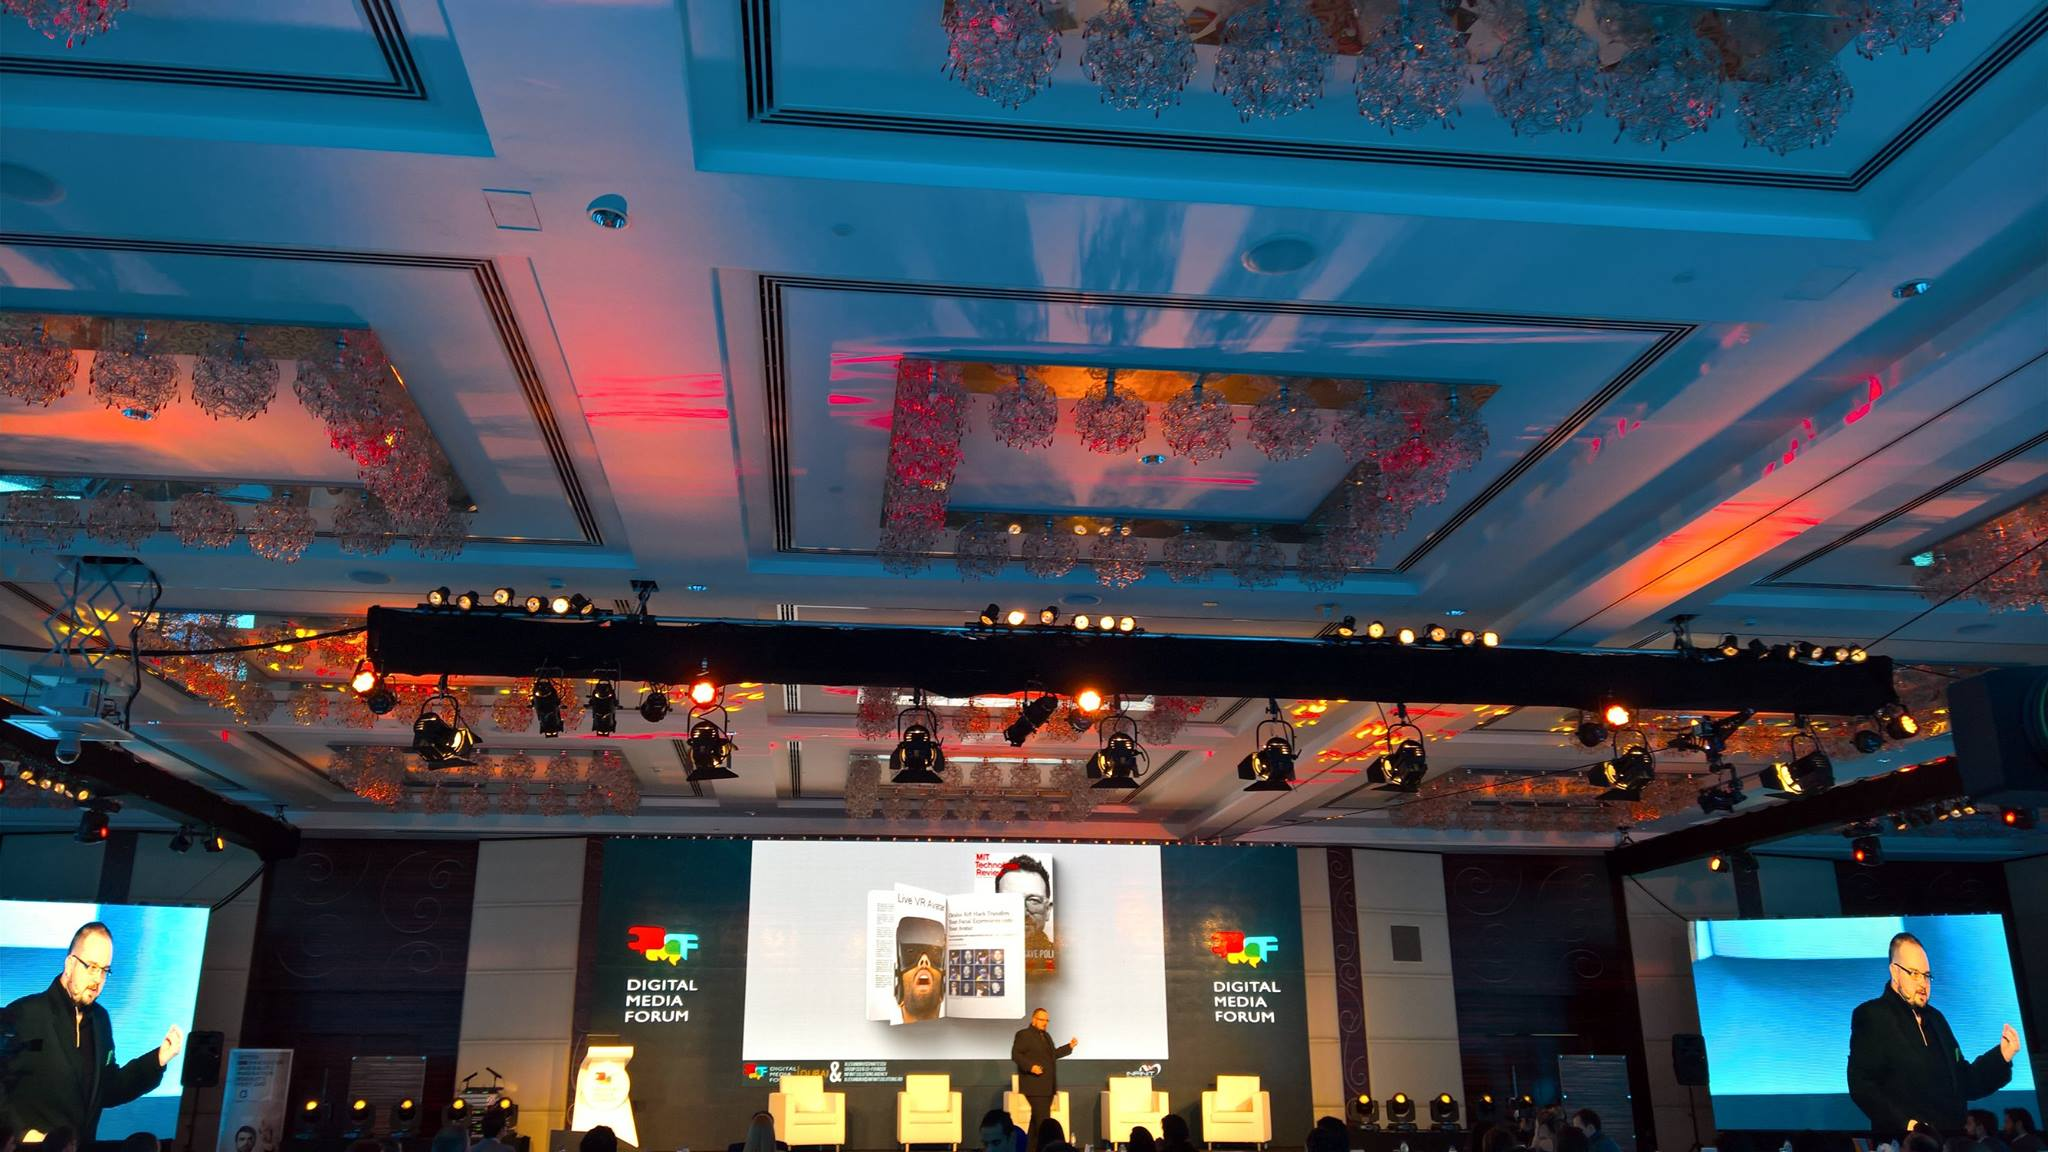 Dubai Digital Media Forum 2016 - Is there a NEXT BIG THING